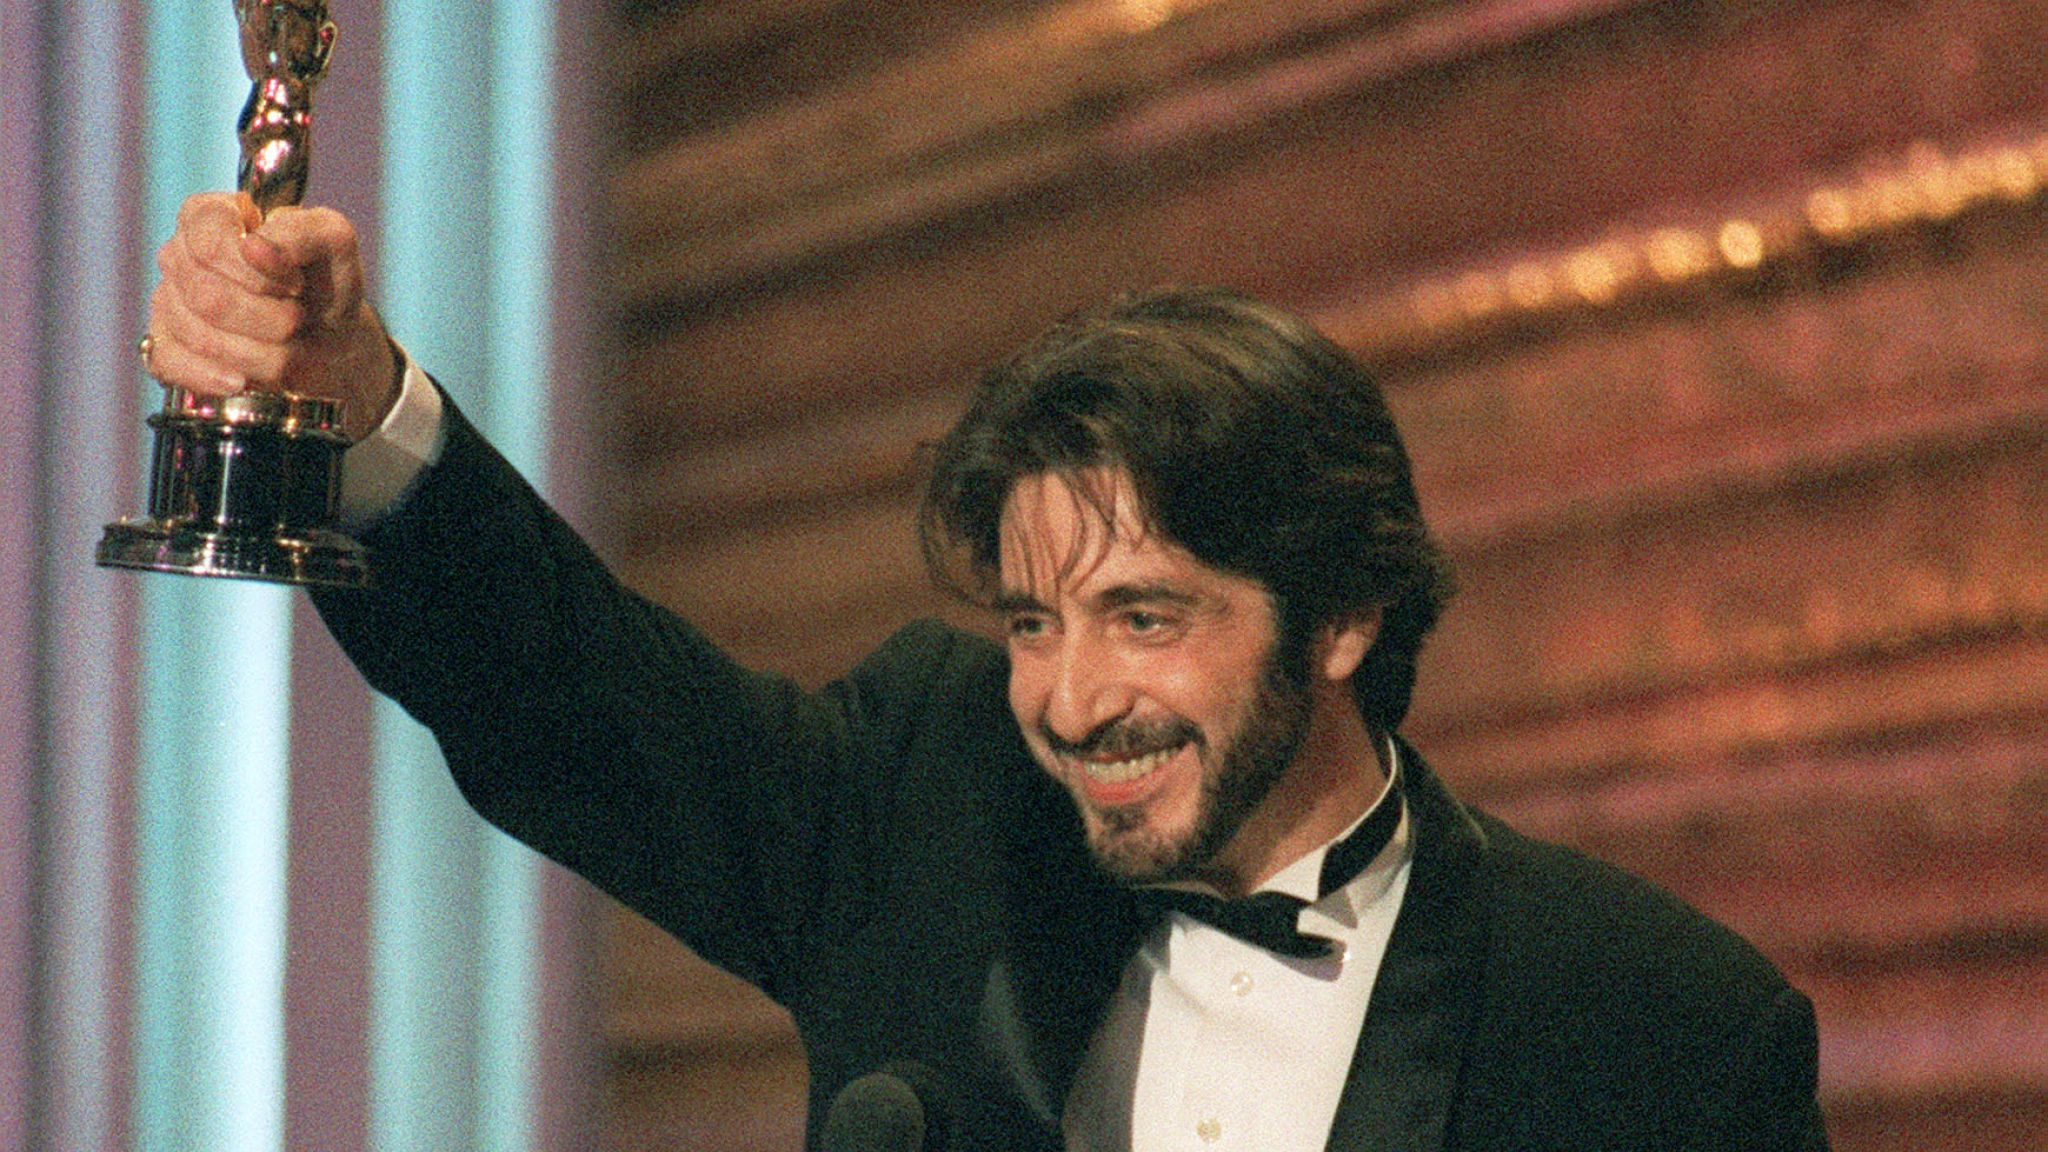 Al Pacino holds up his Oscar during the 65th Annual Academy Awards ceremony 29 March 1993 after being presented the Best Actor award for his performance in Martin Brest's 'Scent of a Woman'